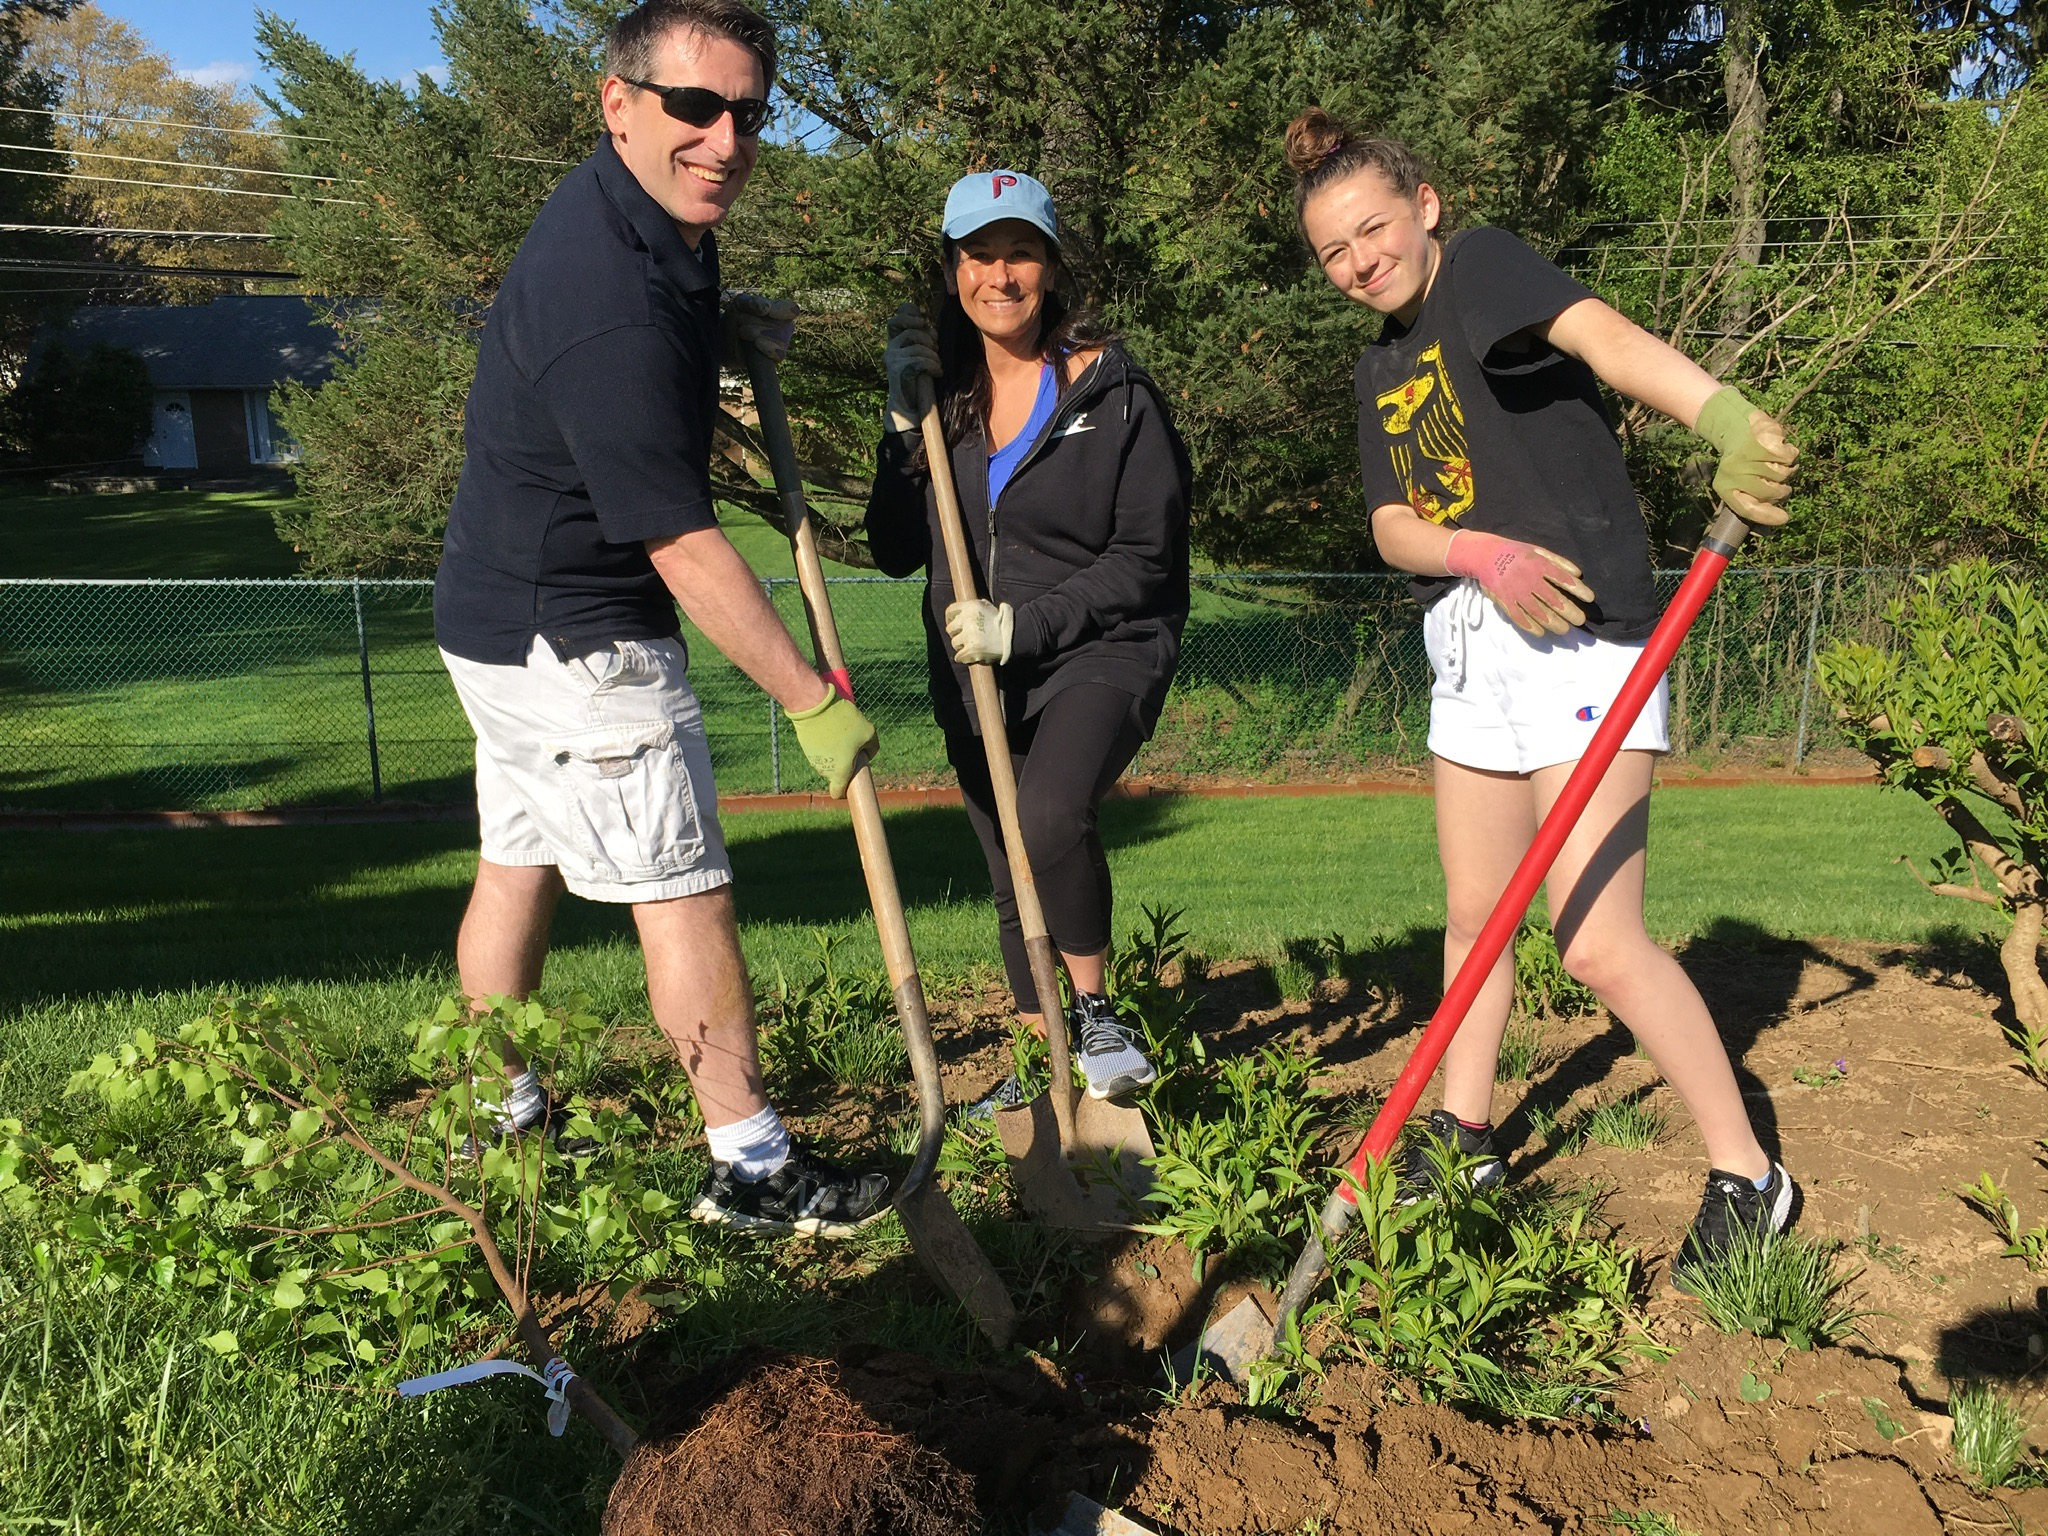 Commissioner Mike McKeon and his family help plant trees at Penn Valley Elementary School.